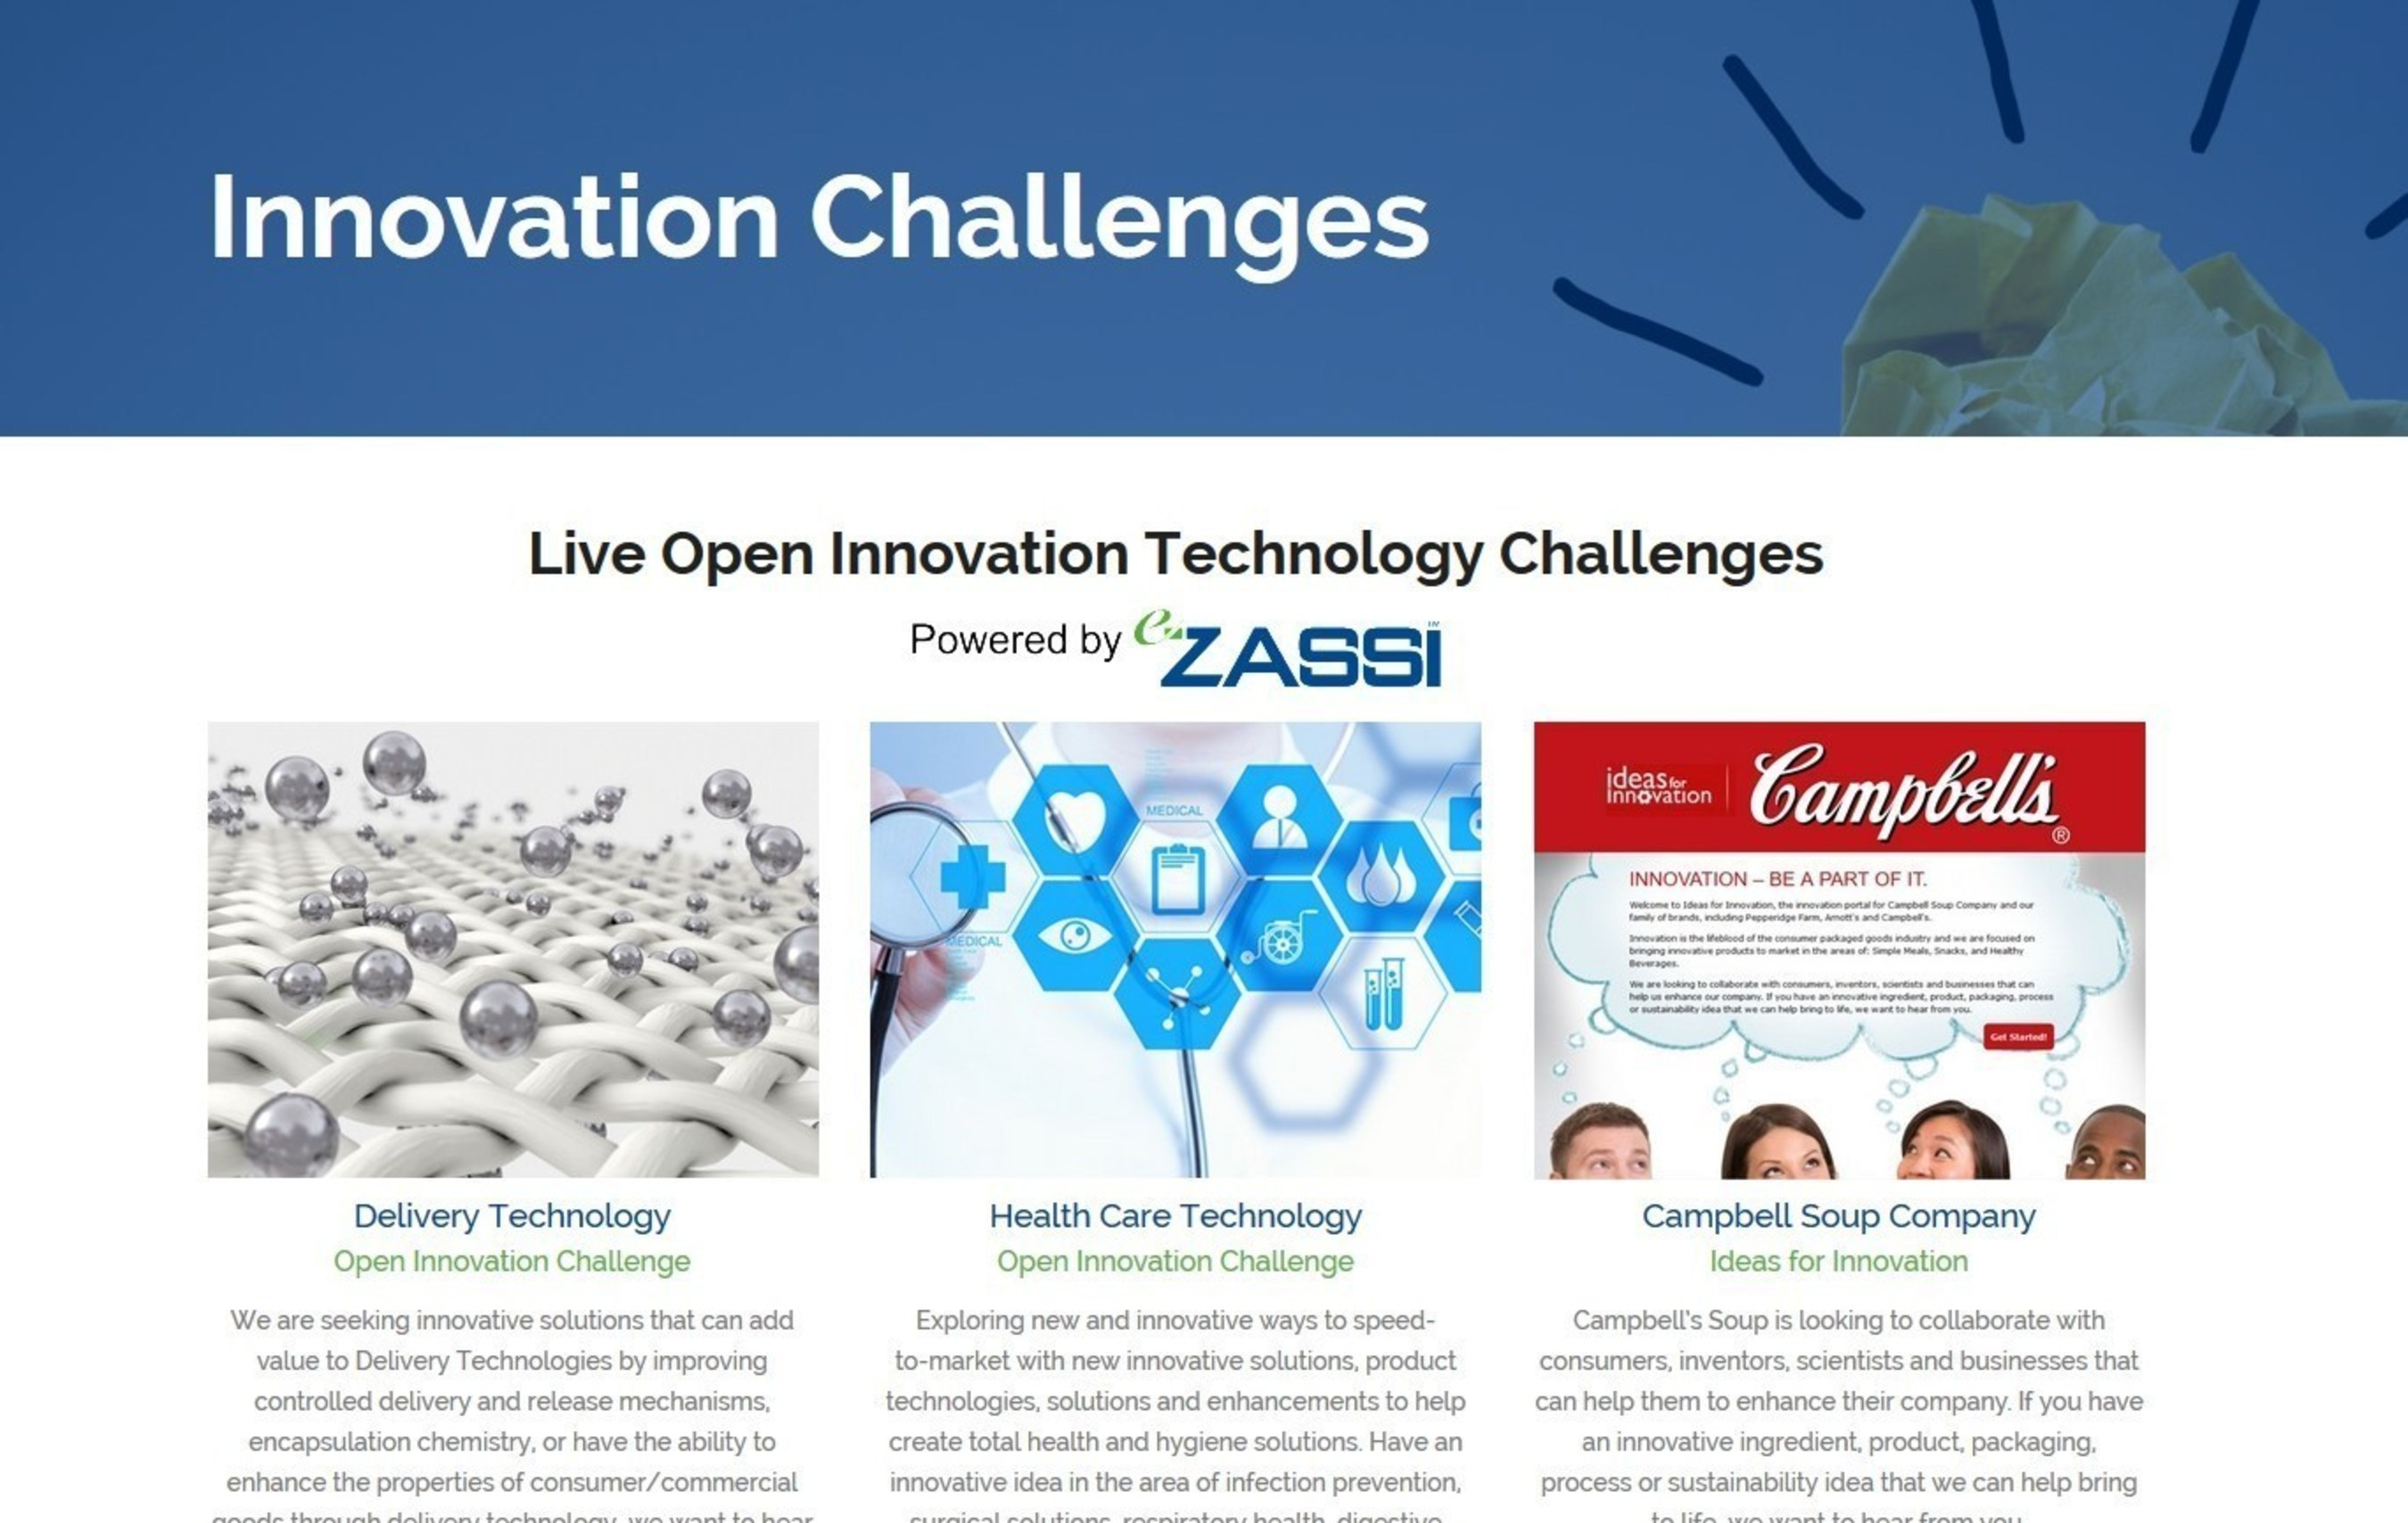 eZassi Announces Launch of an Open Innovation Challenge for